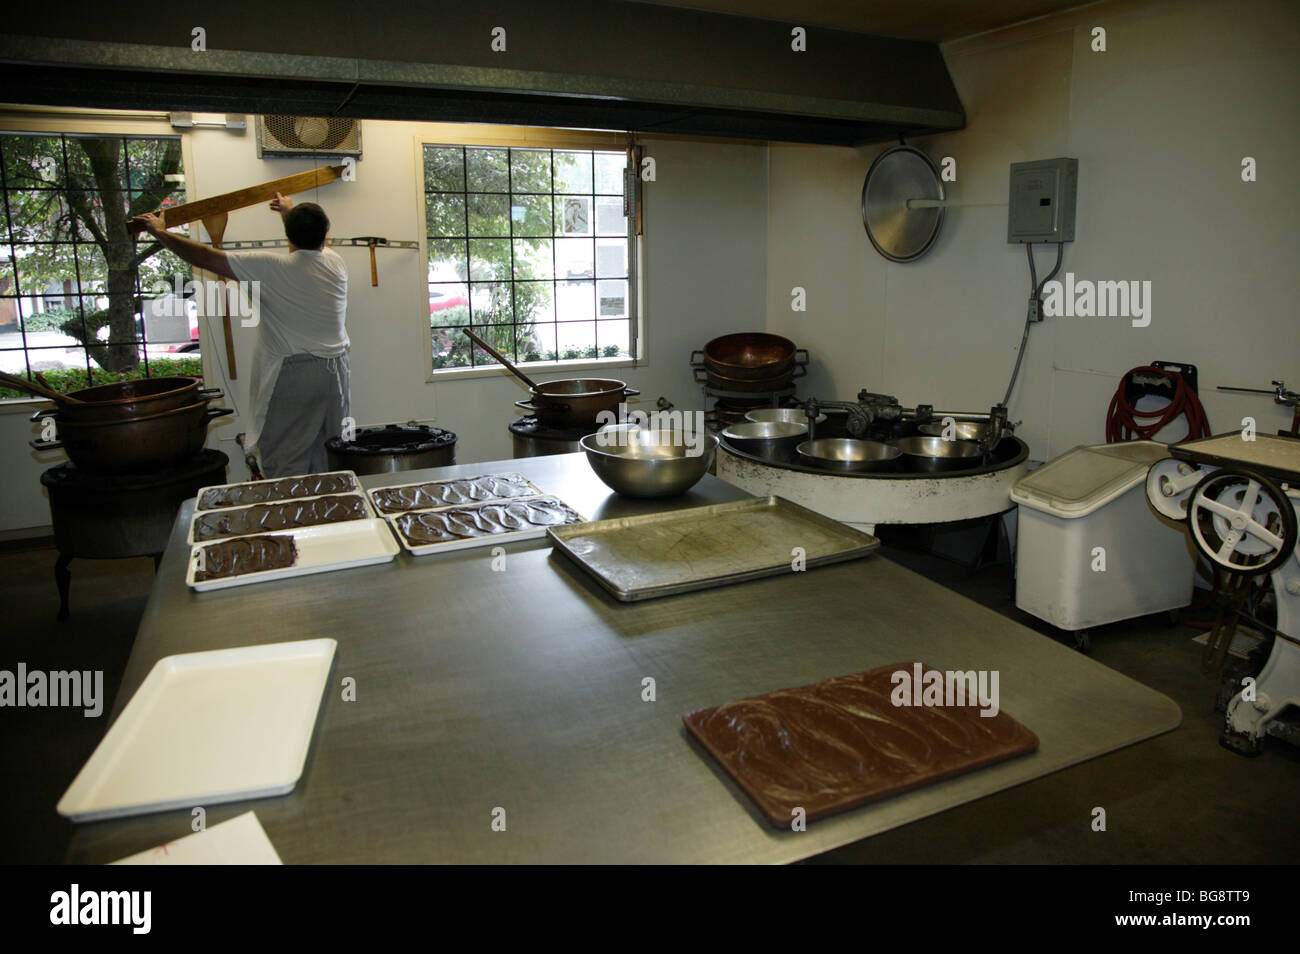 Image showing the equipment used in the early stages  of Chocolate manufacture at Boehms Chocolate Factory, Issaquah - Stock Image